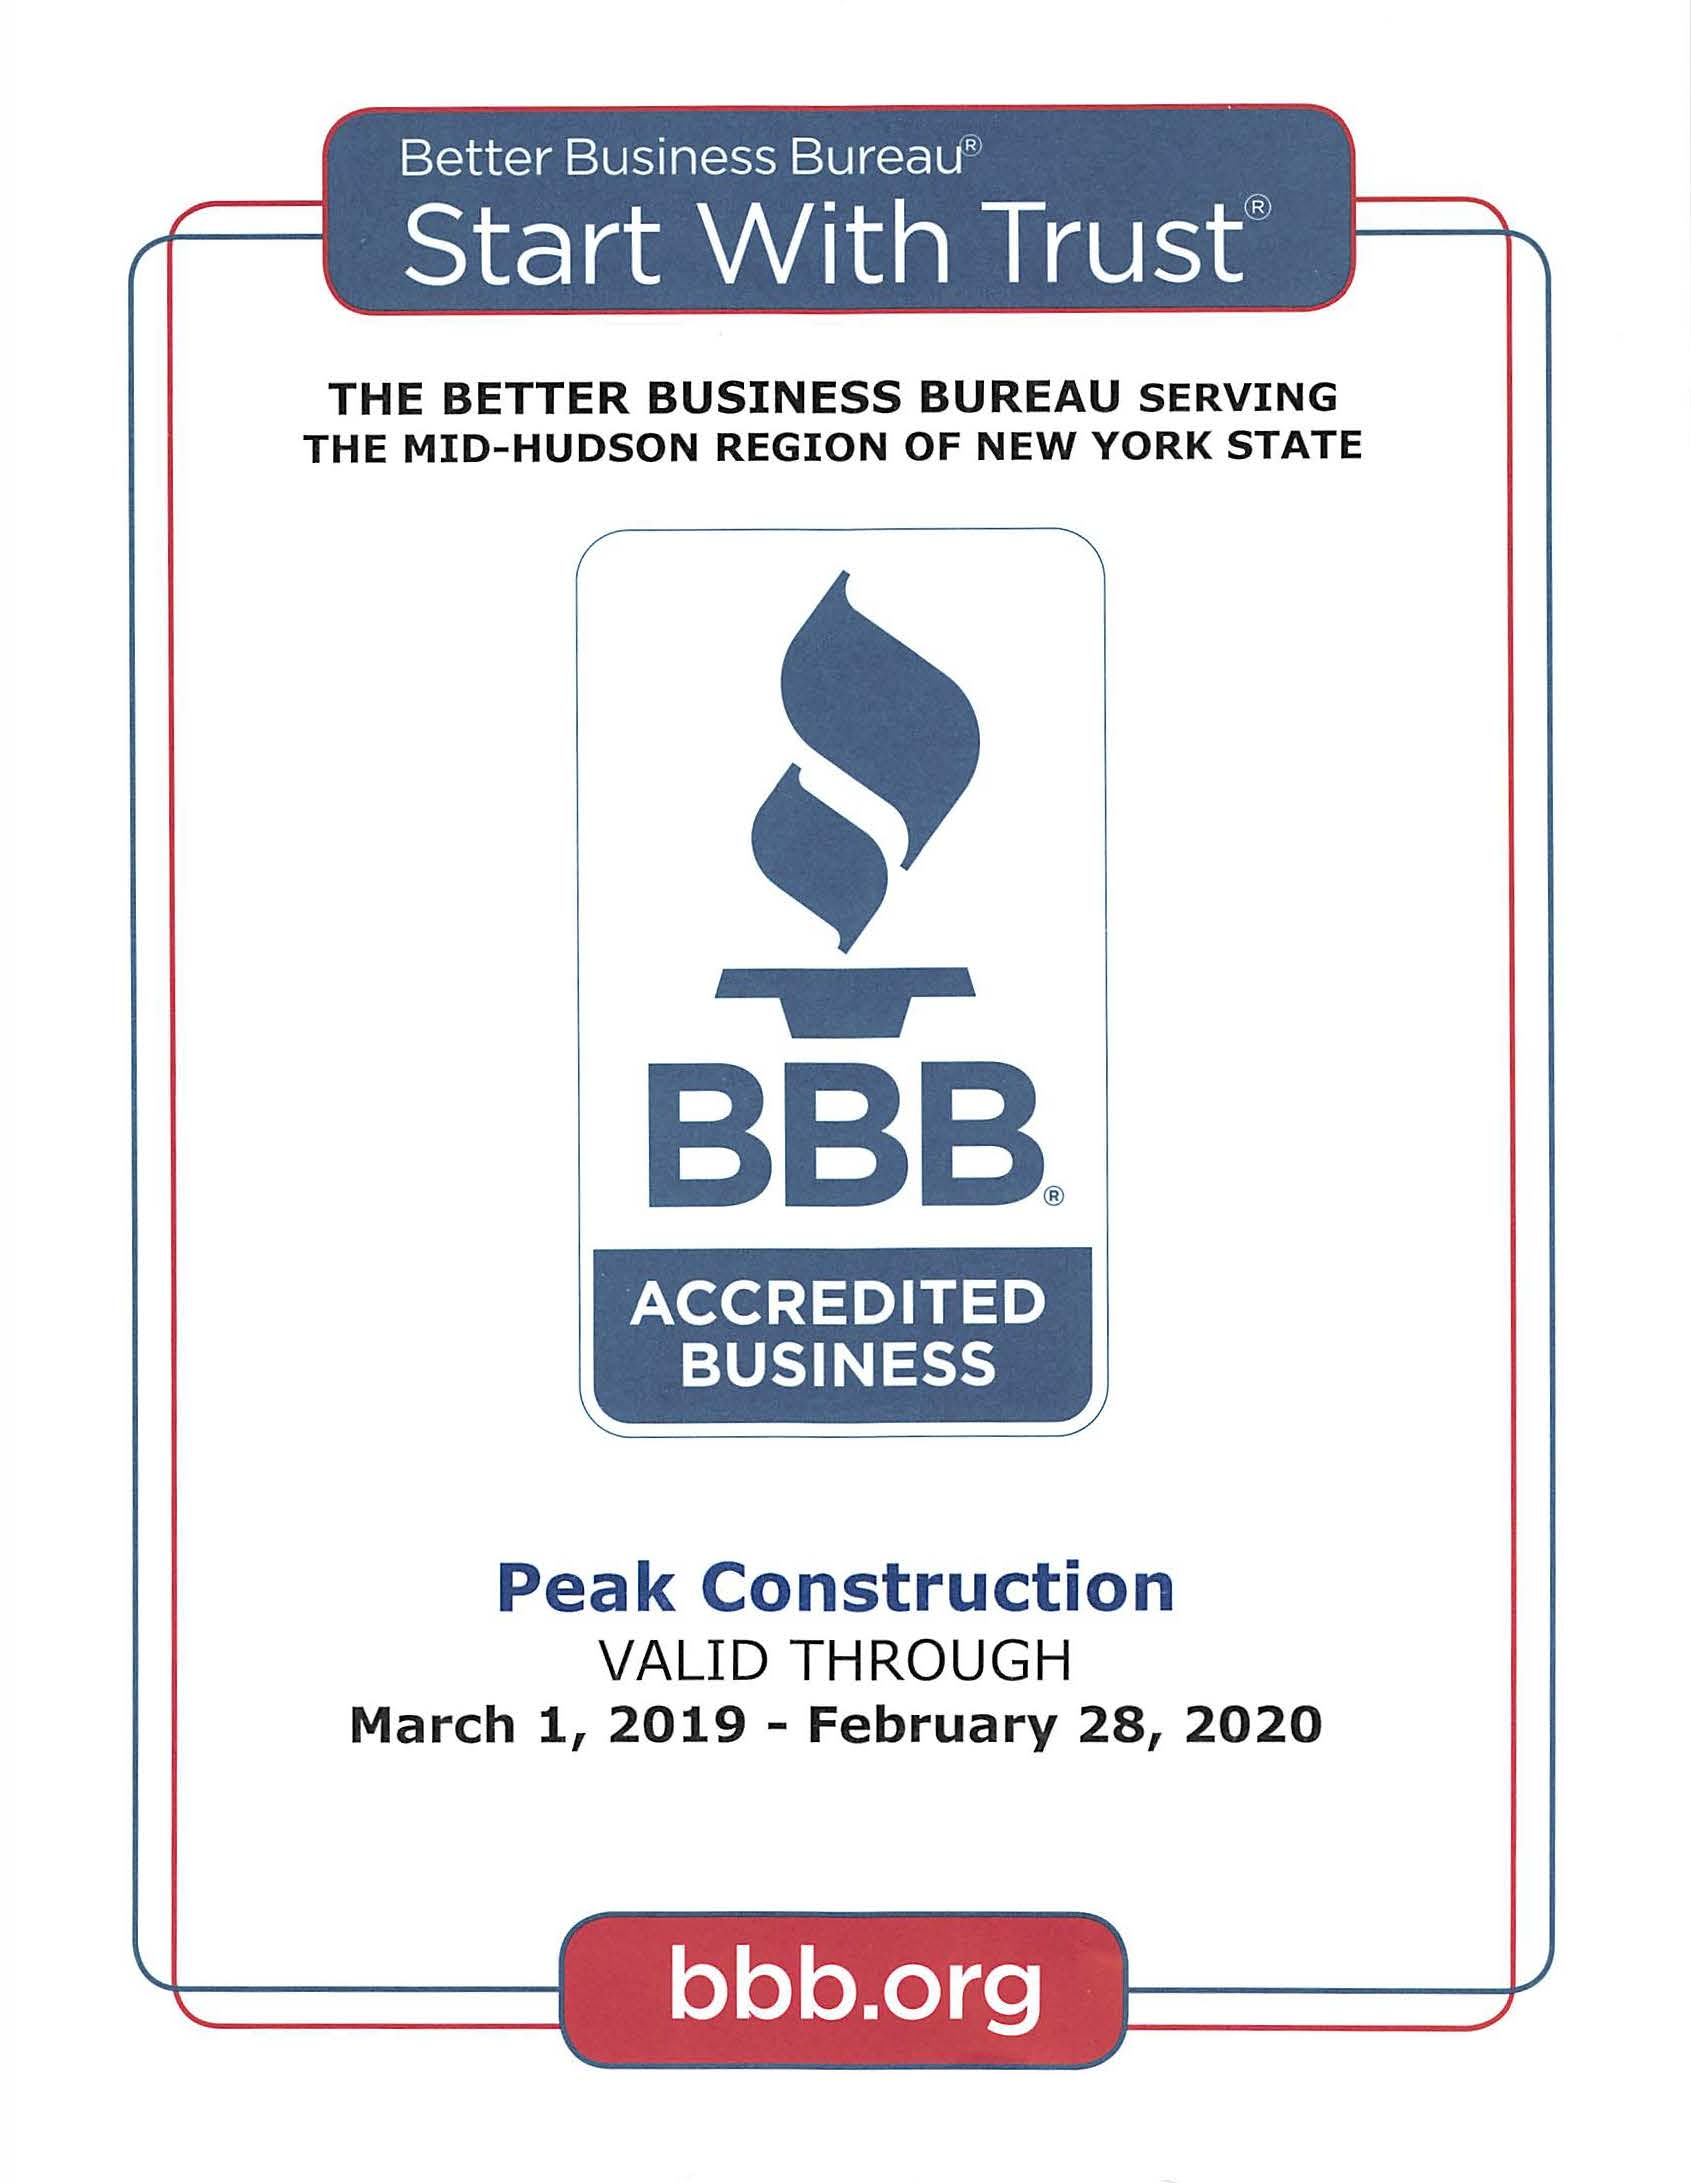 Better Business Bureau Serving Hudson Valley, Peak Construction